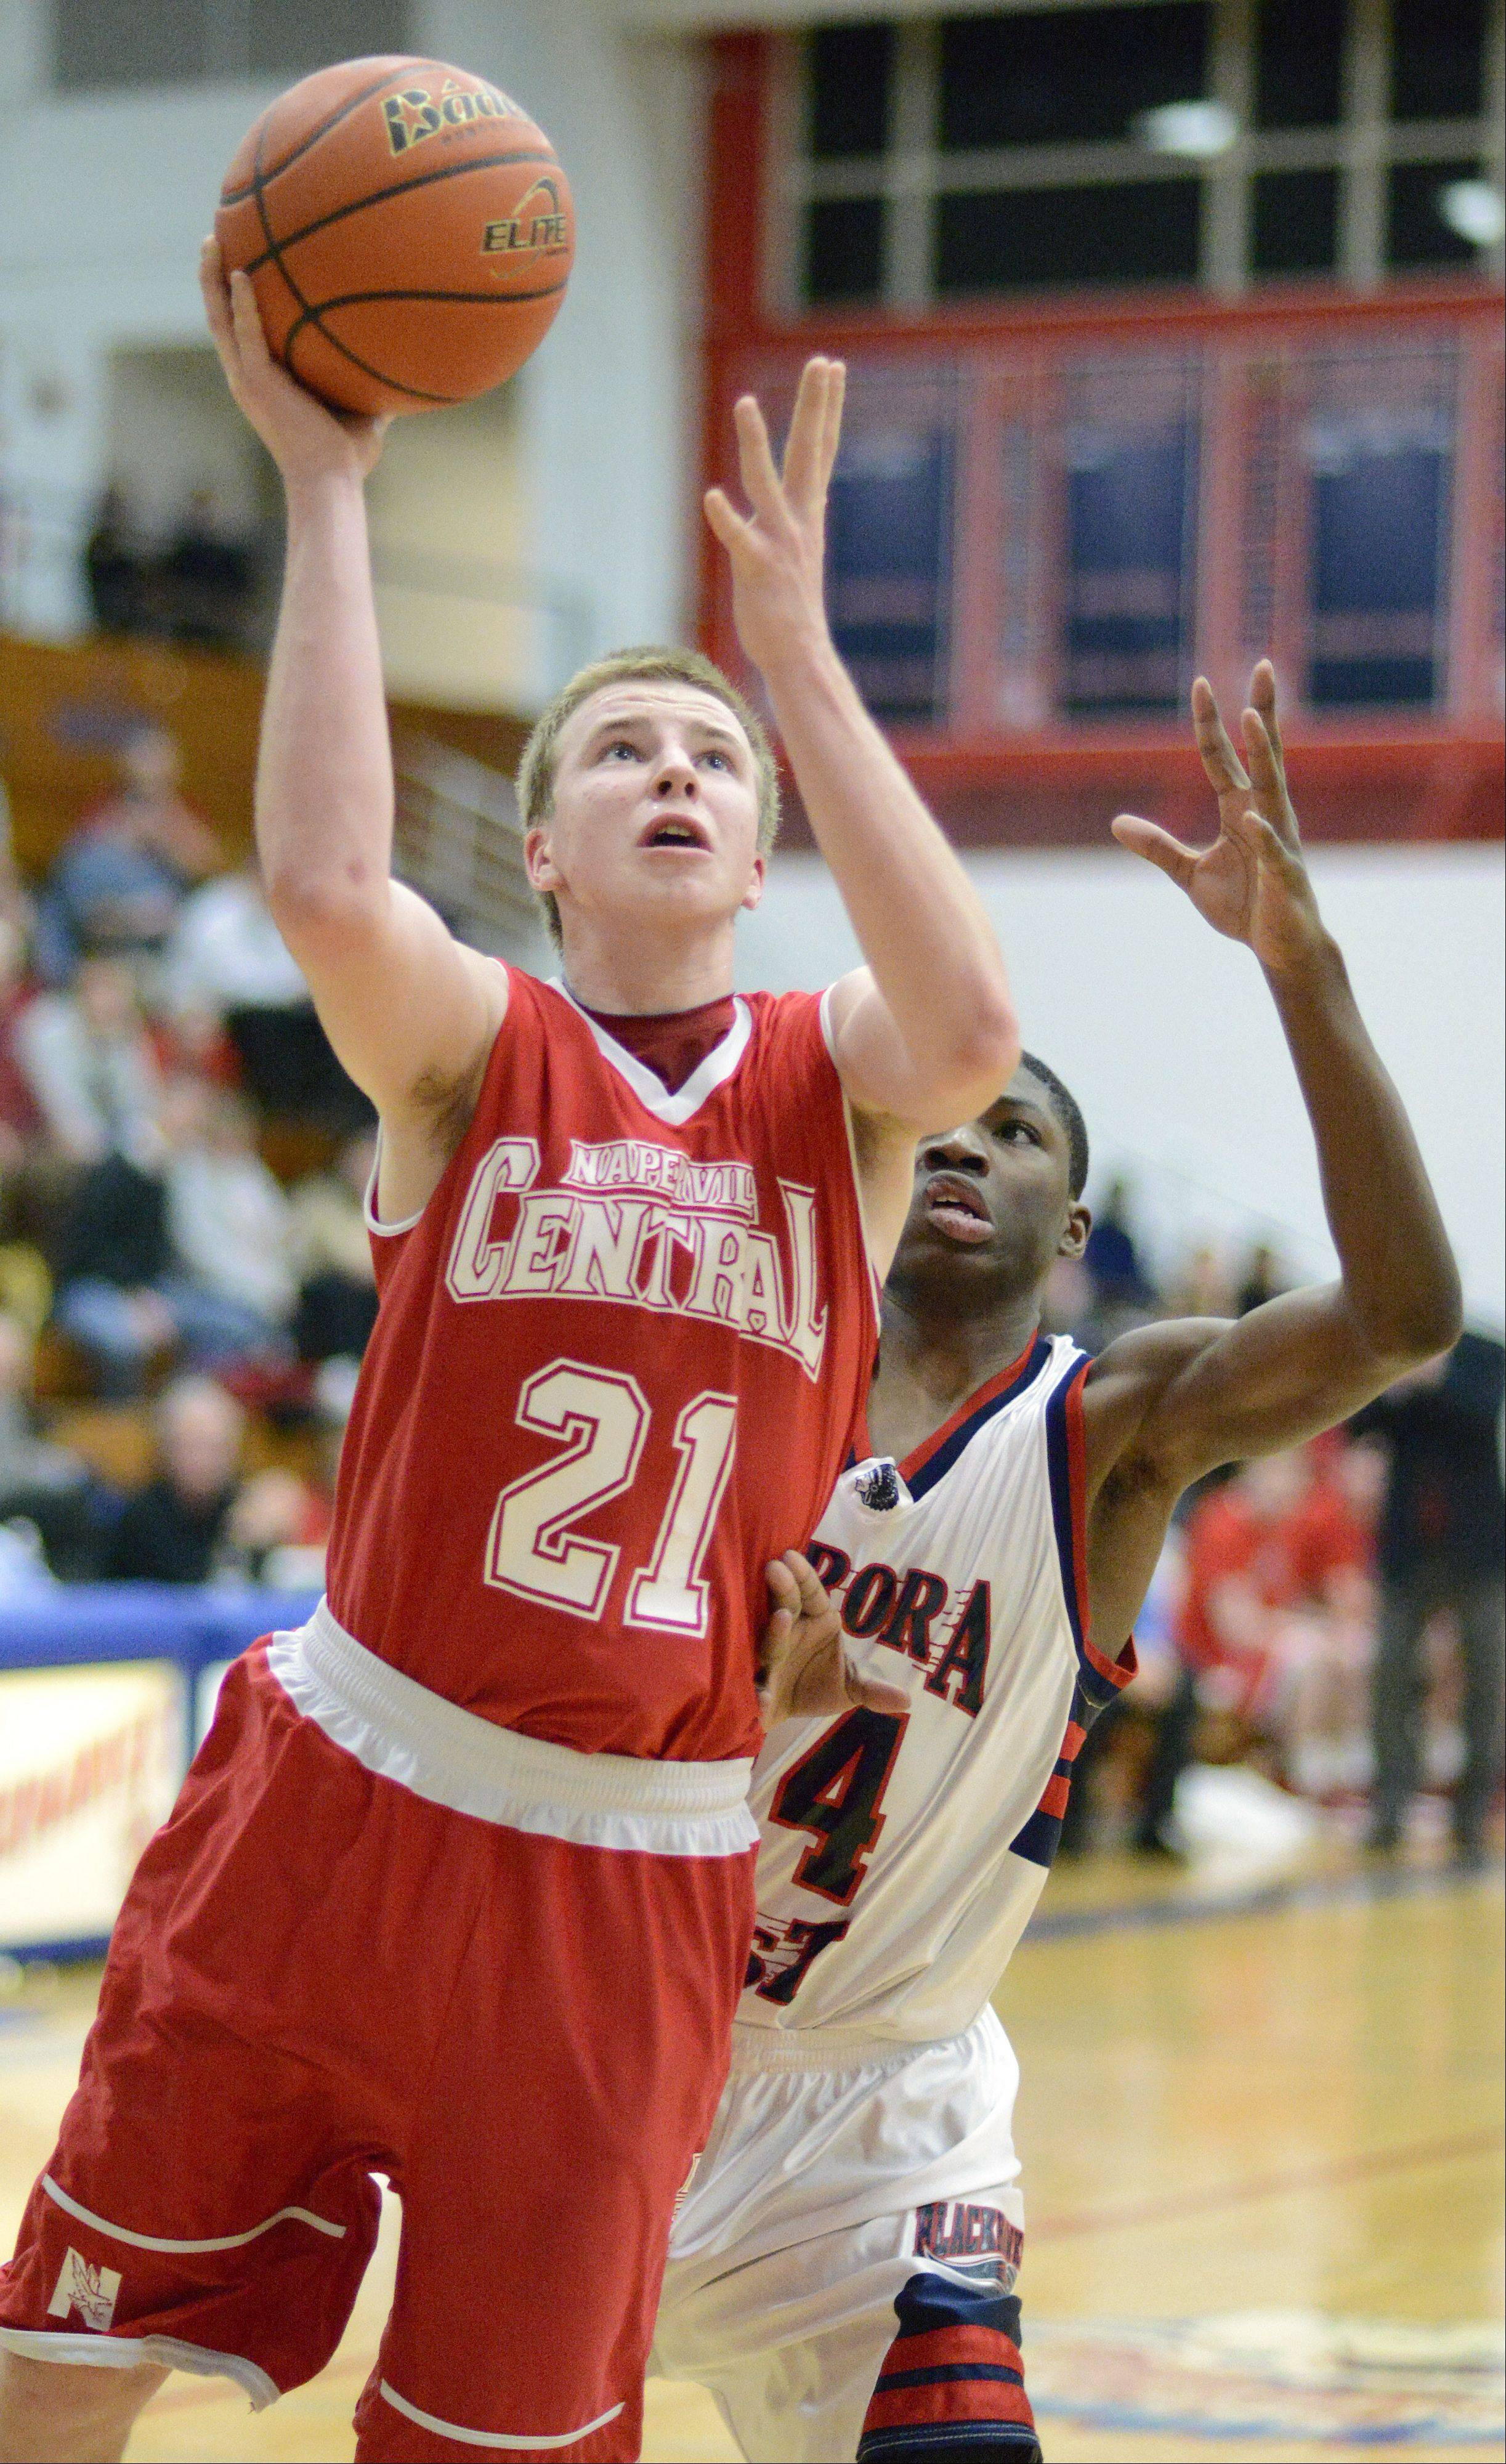 Naperville Central's Mike Blaszceyk shoots past West Aurora's Jayquan Lee in the first quarter on Tuesday, January 29.